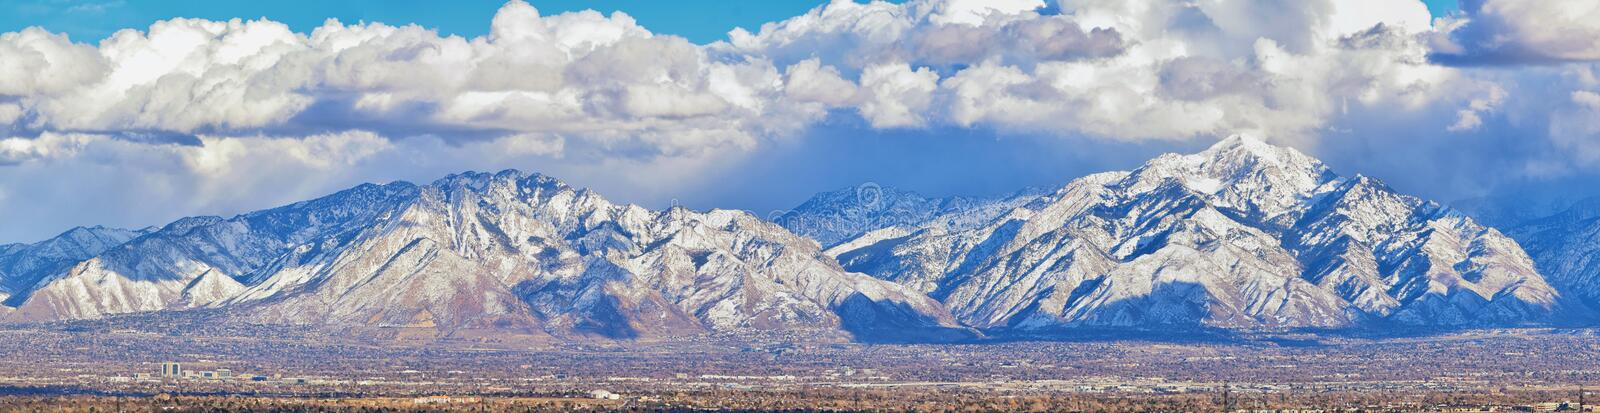 Winter-Panoramablick des Schnees bedeckte Wasatch Front Rocky Mountains, Great- Salt Laketal und Cloudscape von Bacchus Highway m lizenzfreies stockfoto